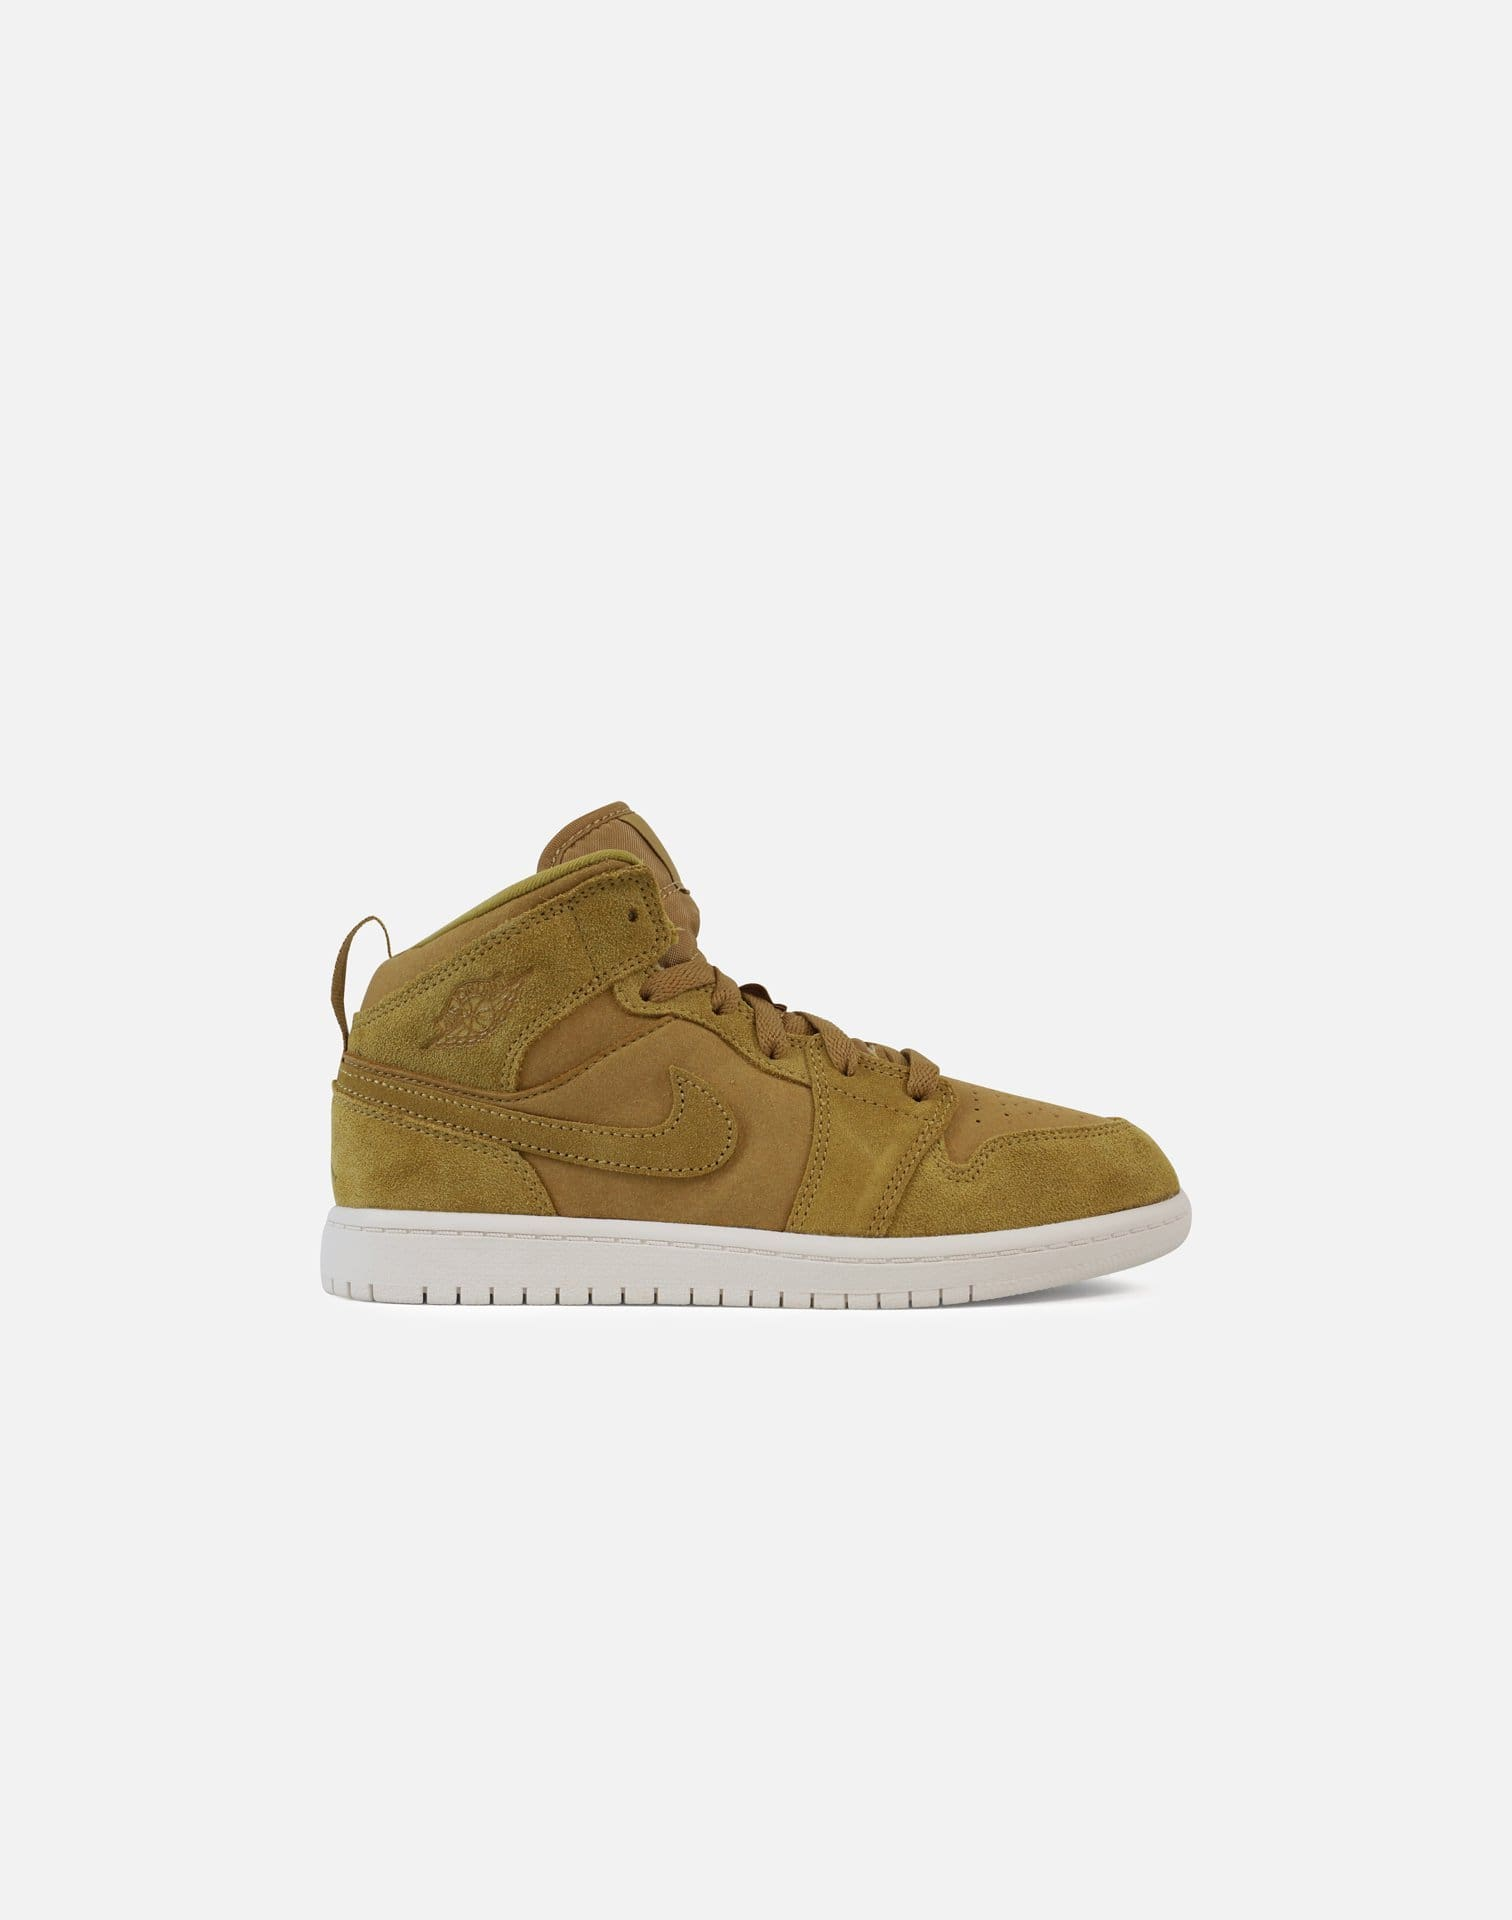 Jordan Retro 1 Mid Pre-School (Golden Harvest/Sail)